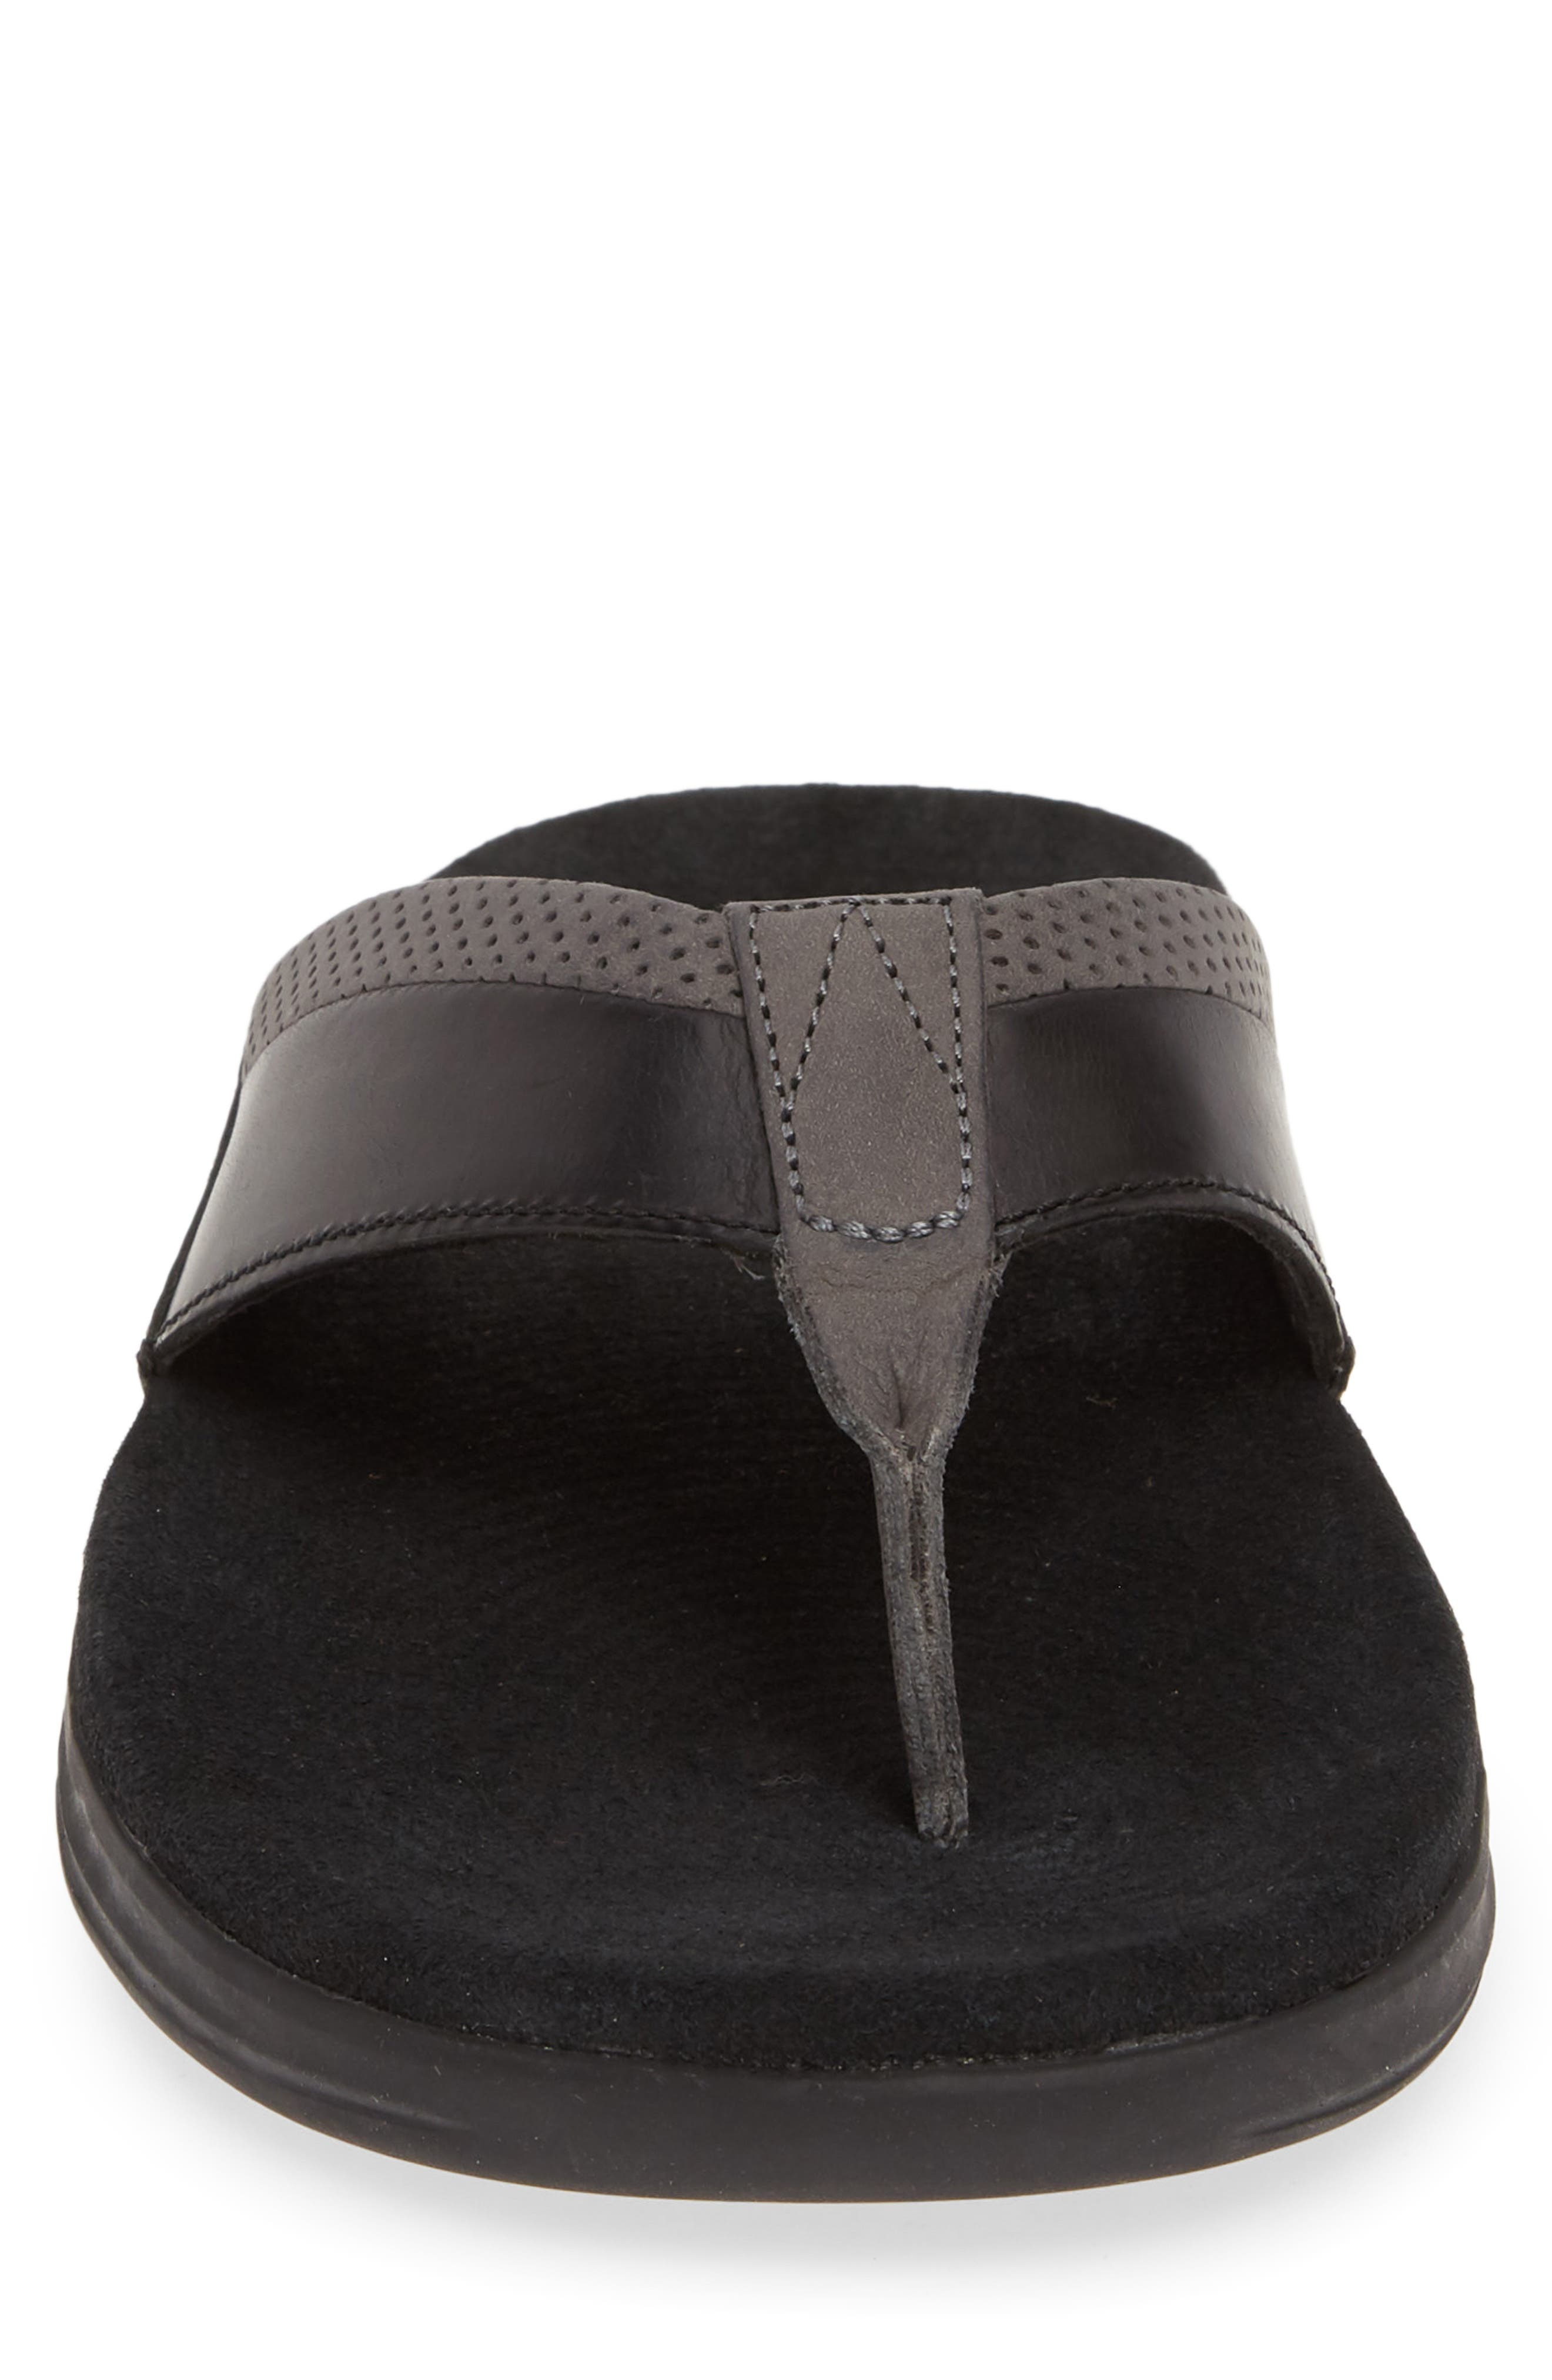 SPERRY, Gold Cup Amalfi Flip Flop, Alternate thumbnail 4, color, BLACK/ GREY LEATHER